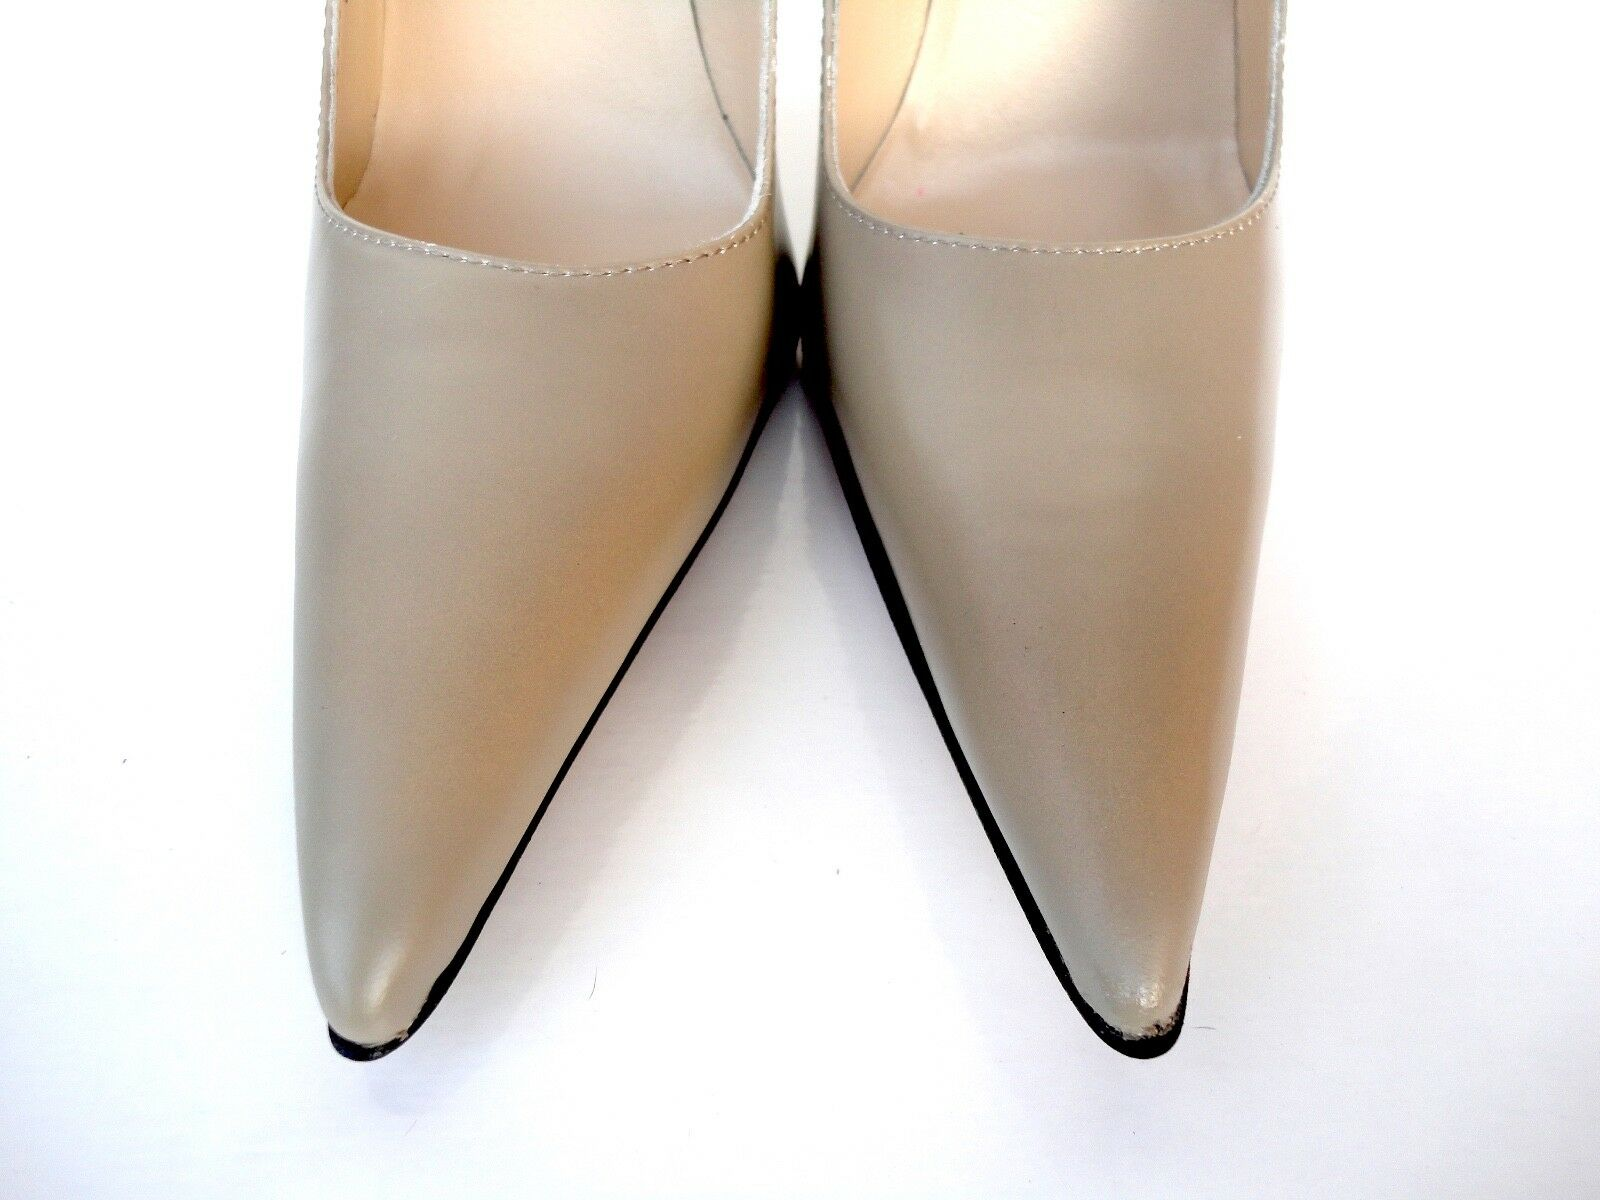 GIOHEL ITALY DECOLTE HIGH HEELS POINTY TOE PUMPS SCHUHE LEATHER DECOLTE ITALY BEIGE NUDE 40 8fbb88